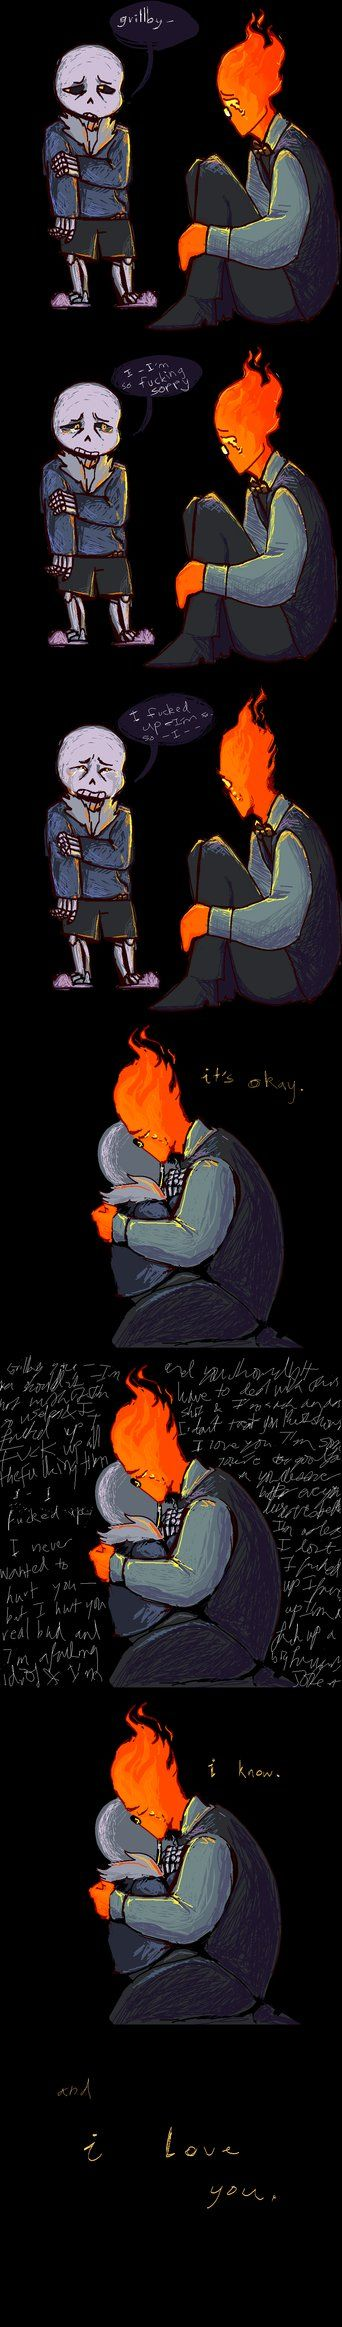 Omg... Awwww sans don't cry grillby loves you